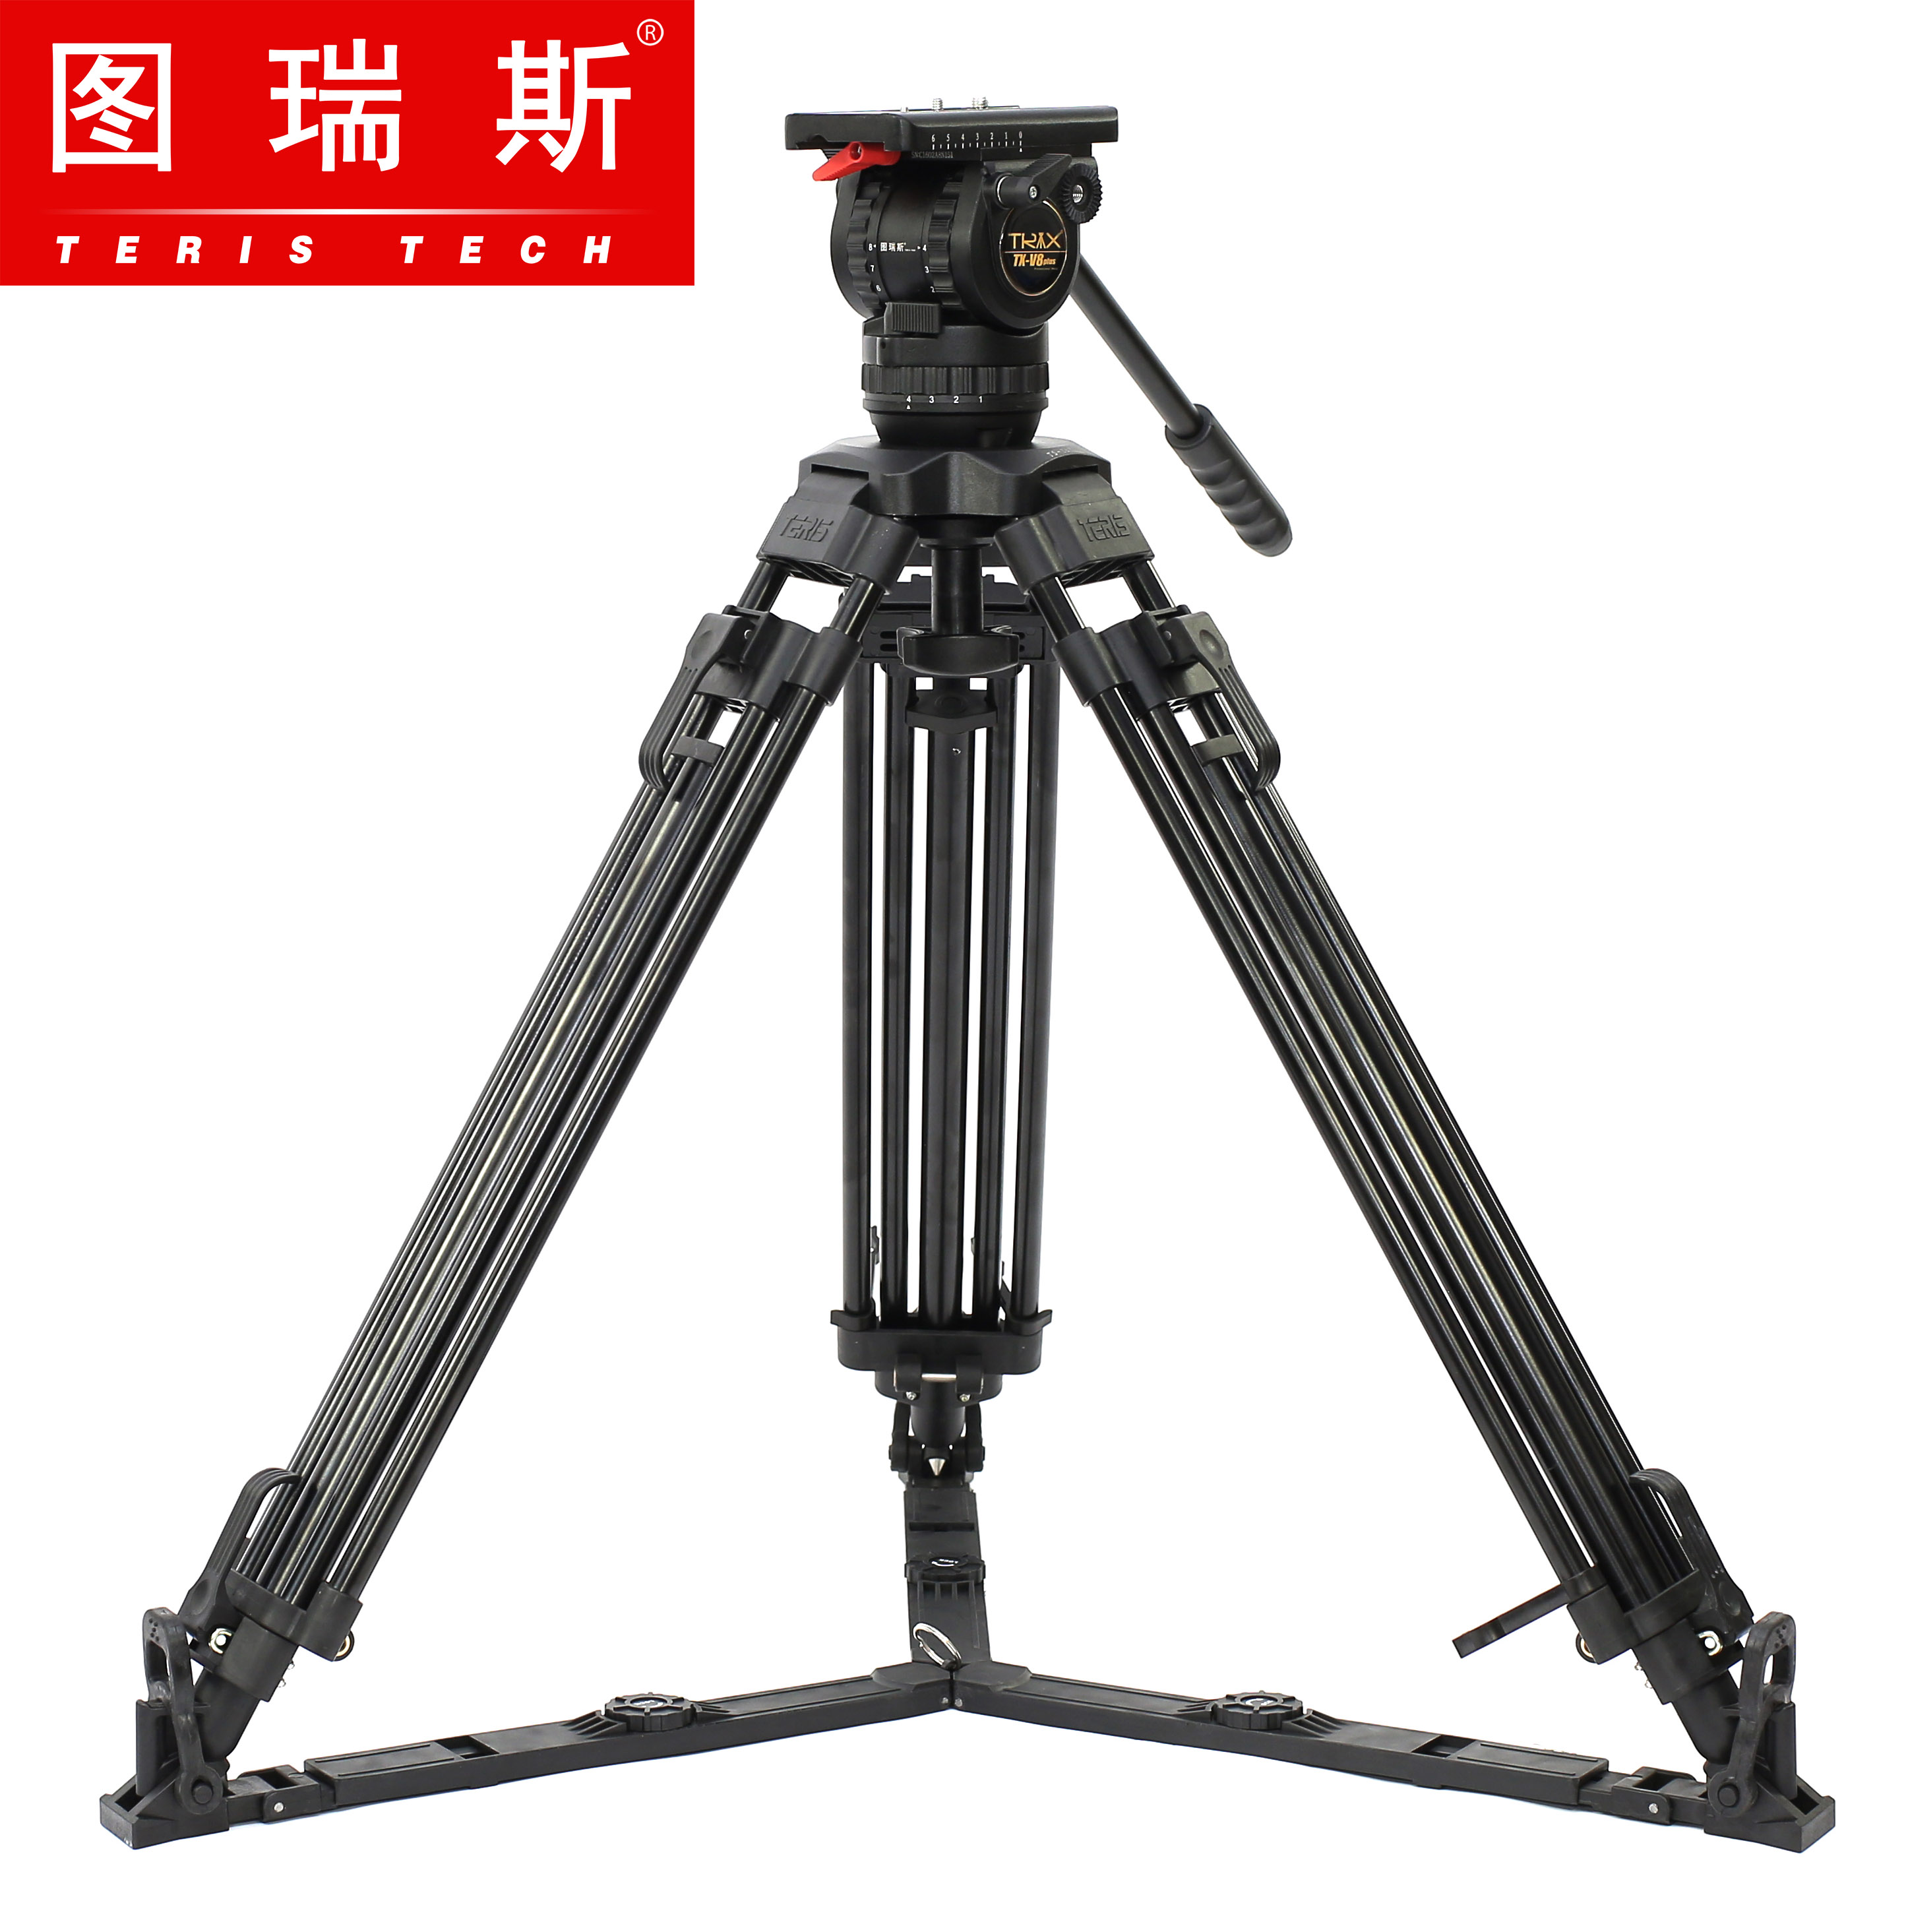 TERIS V8L Professional Tripod Kit with Fluid Head Load 8KG Aluminum Video Camcoder Tripod for HDV